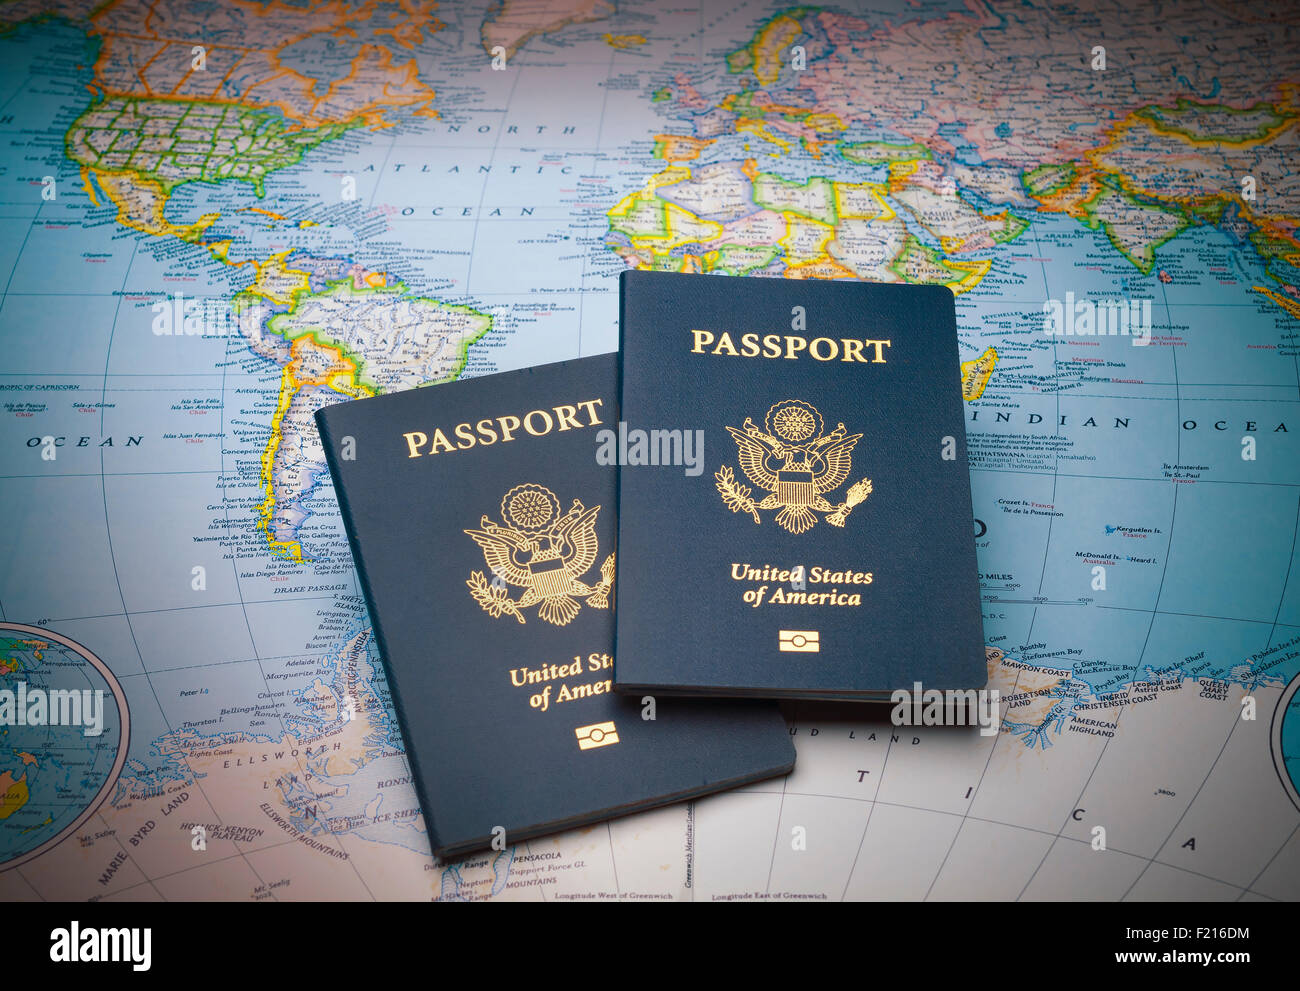 Passports on a world map - Stock Image